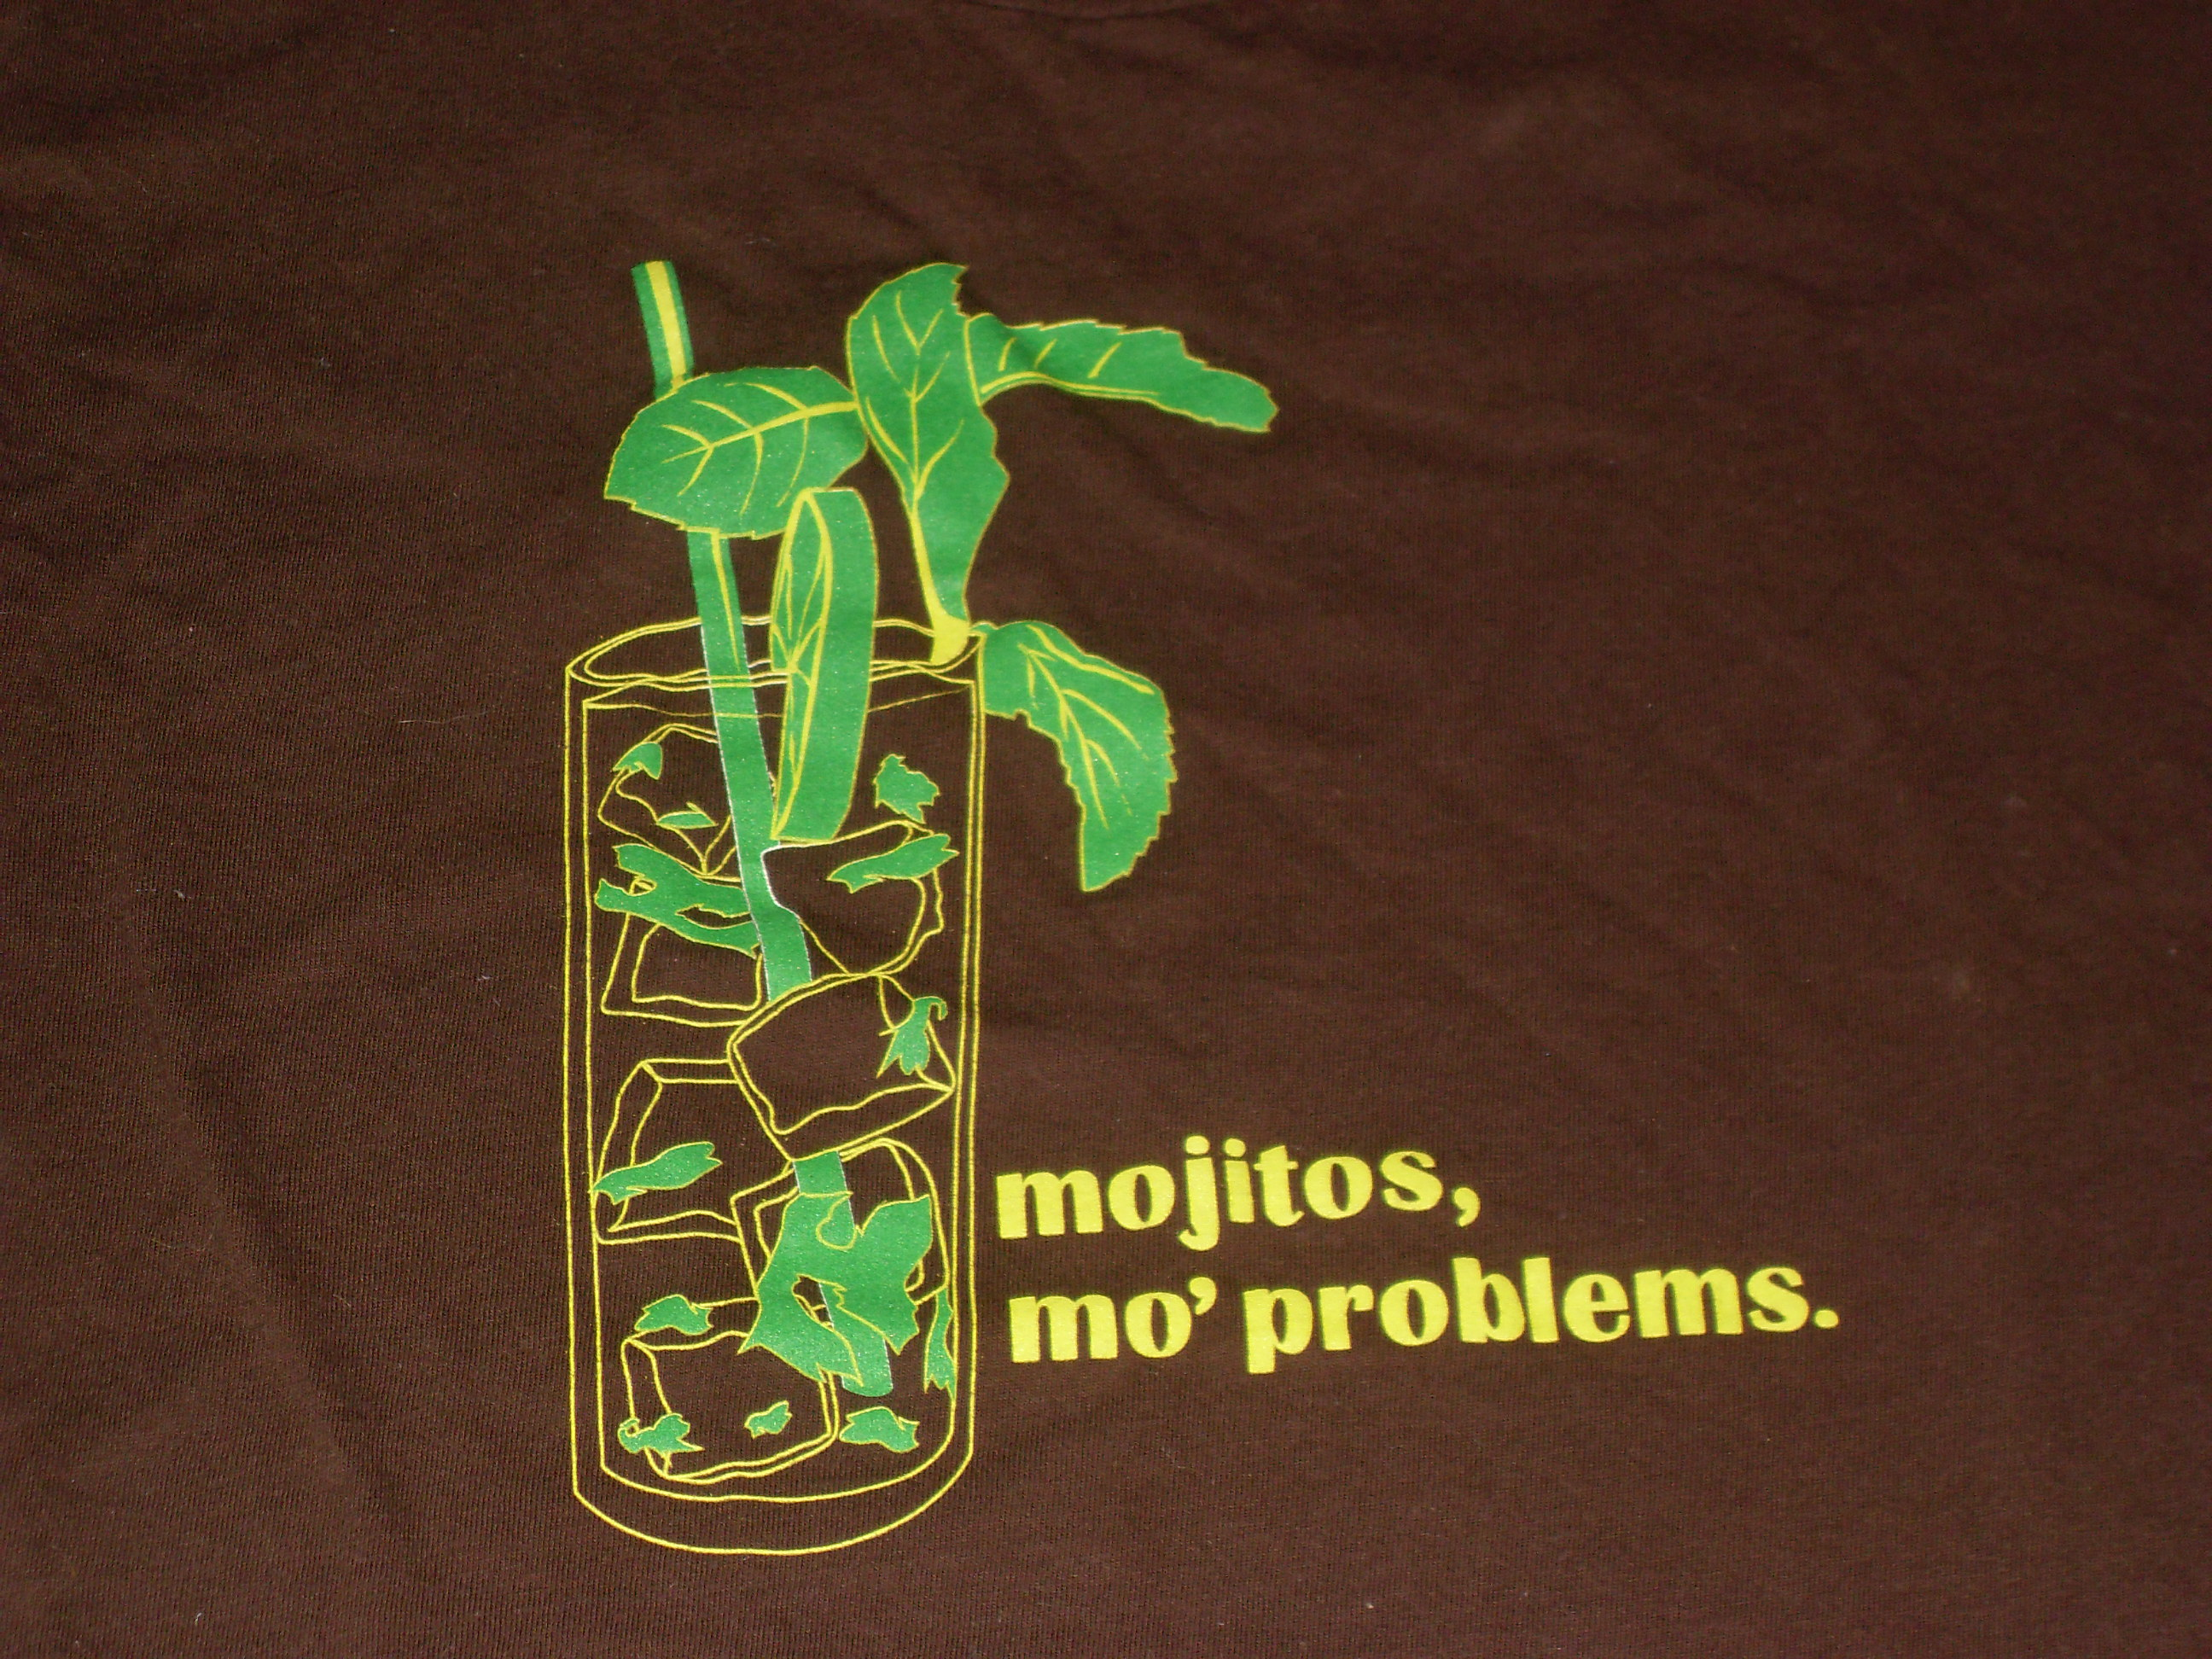 Mojitos, 'mo problems